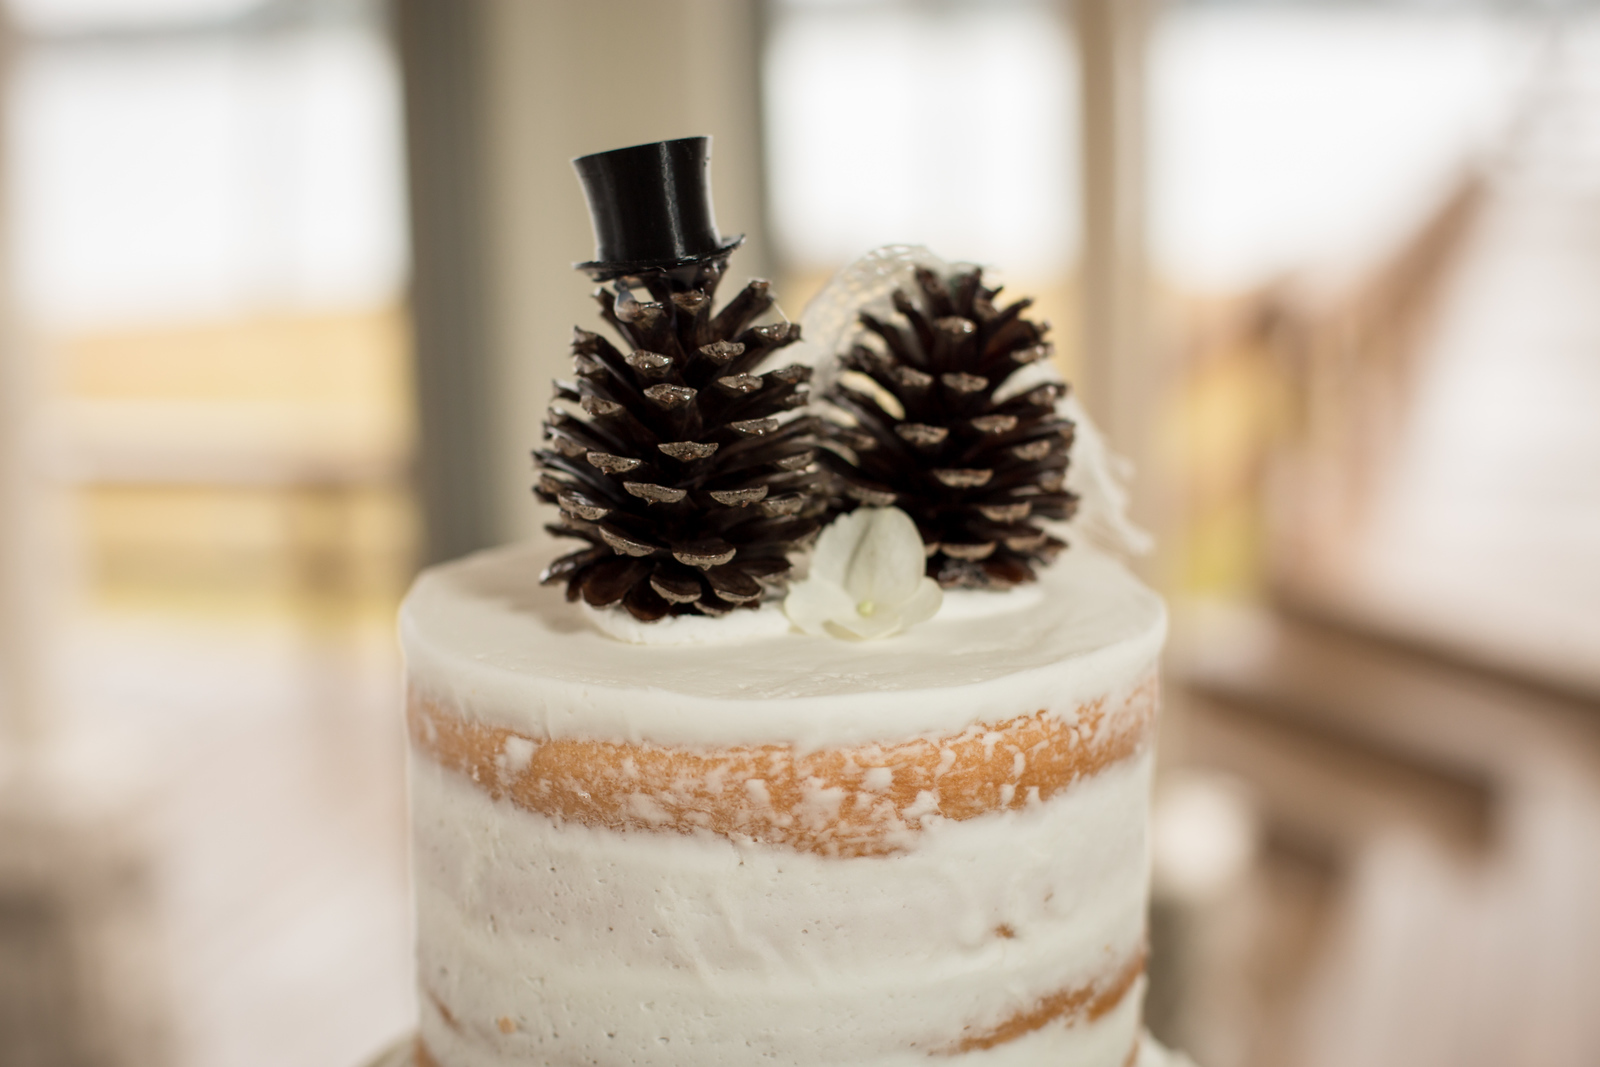 pine cones used as wedding cake toppers atop a plain white buttercream wedding cake